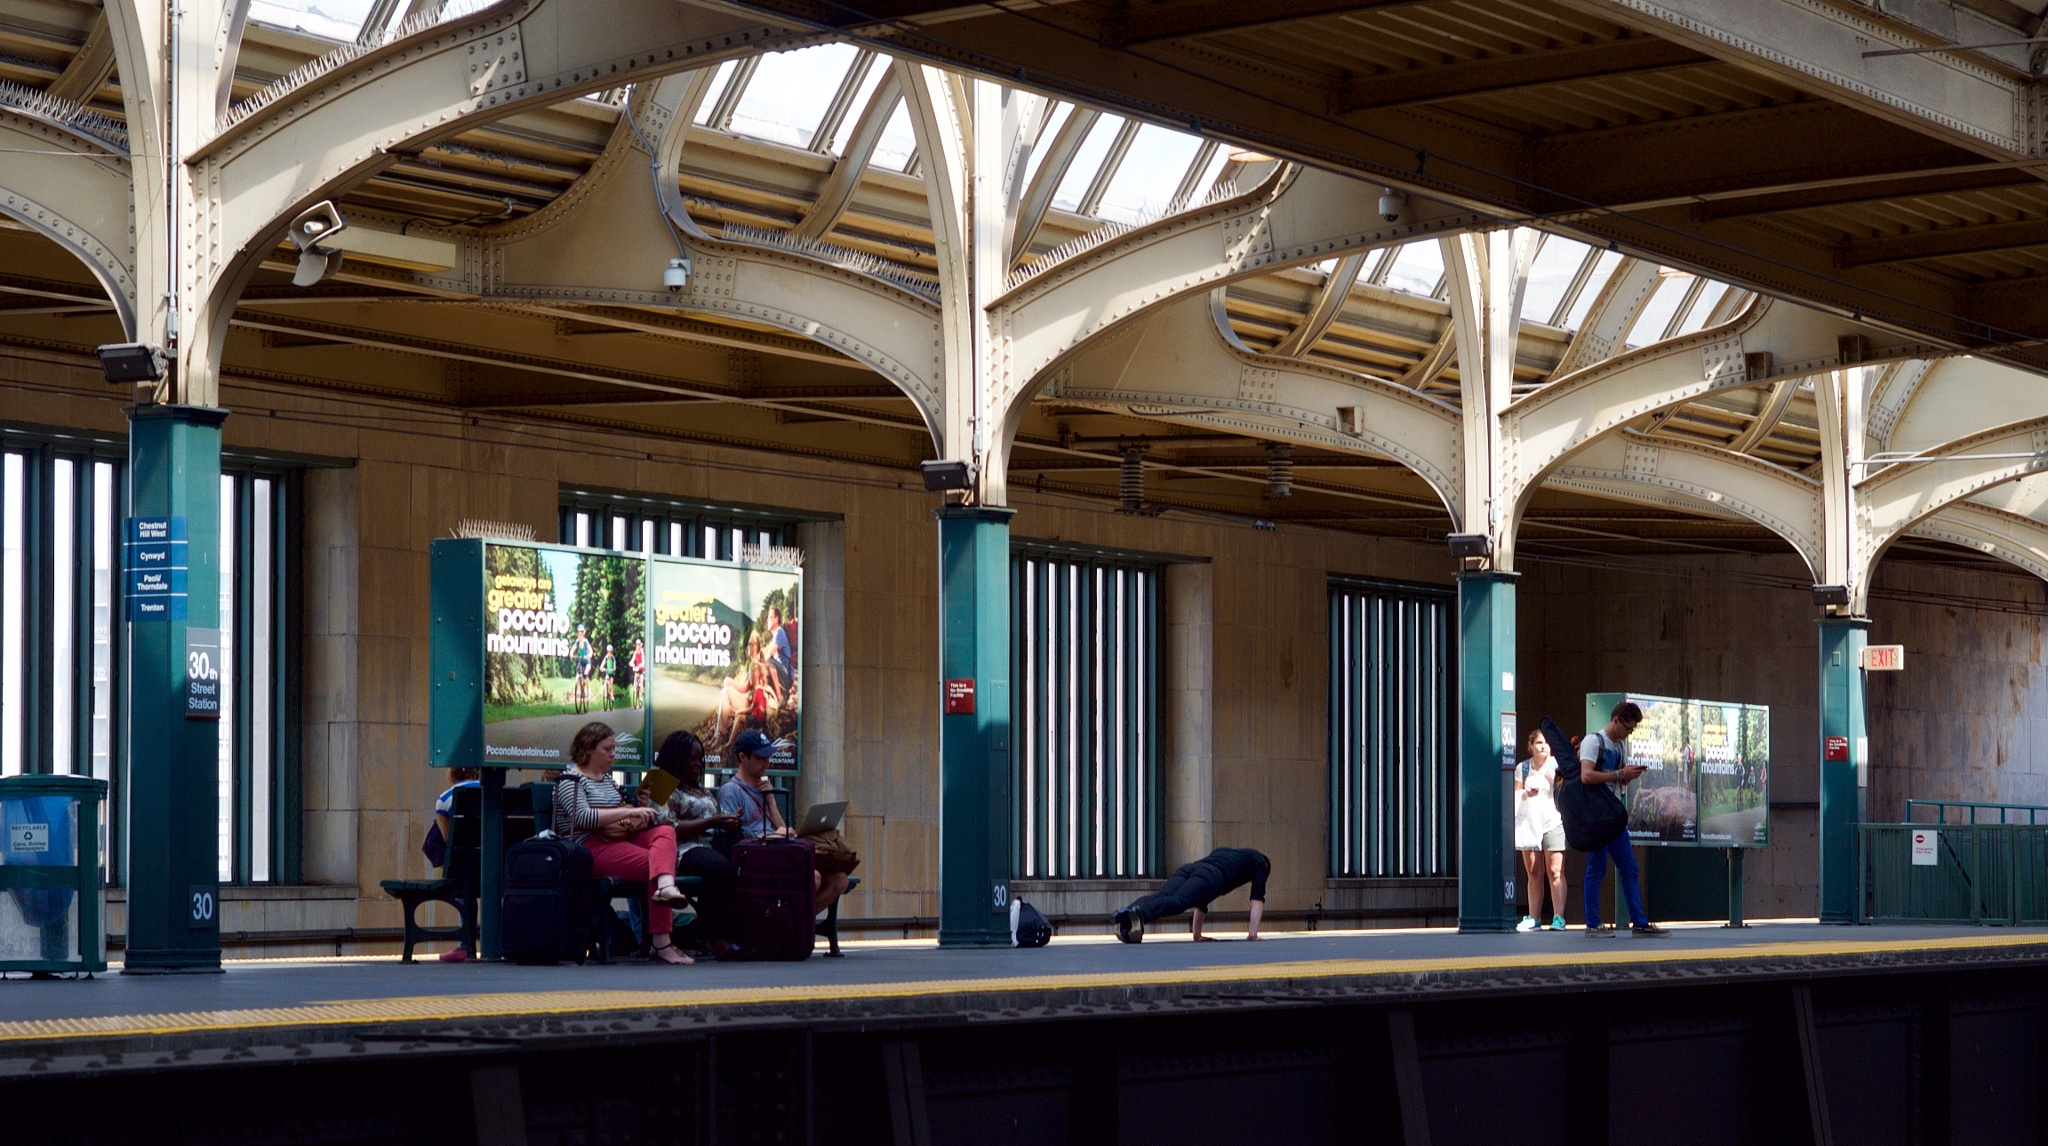 waiting for train ride by MTM